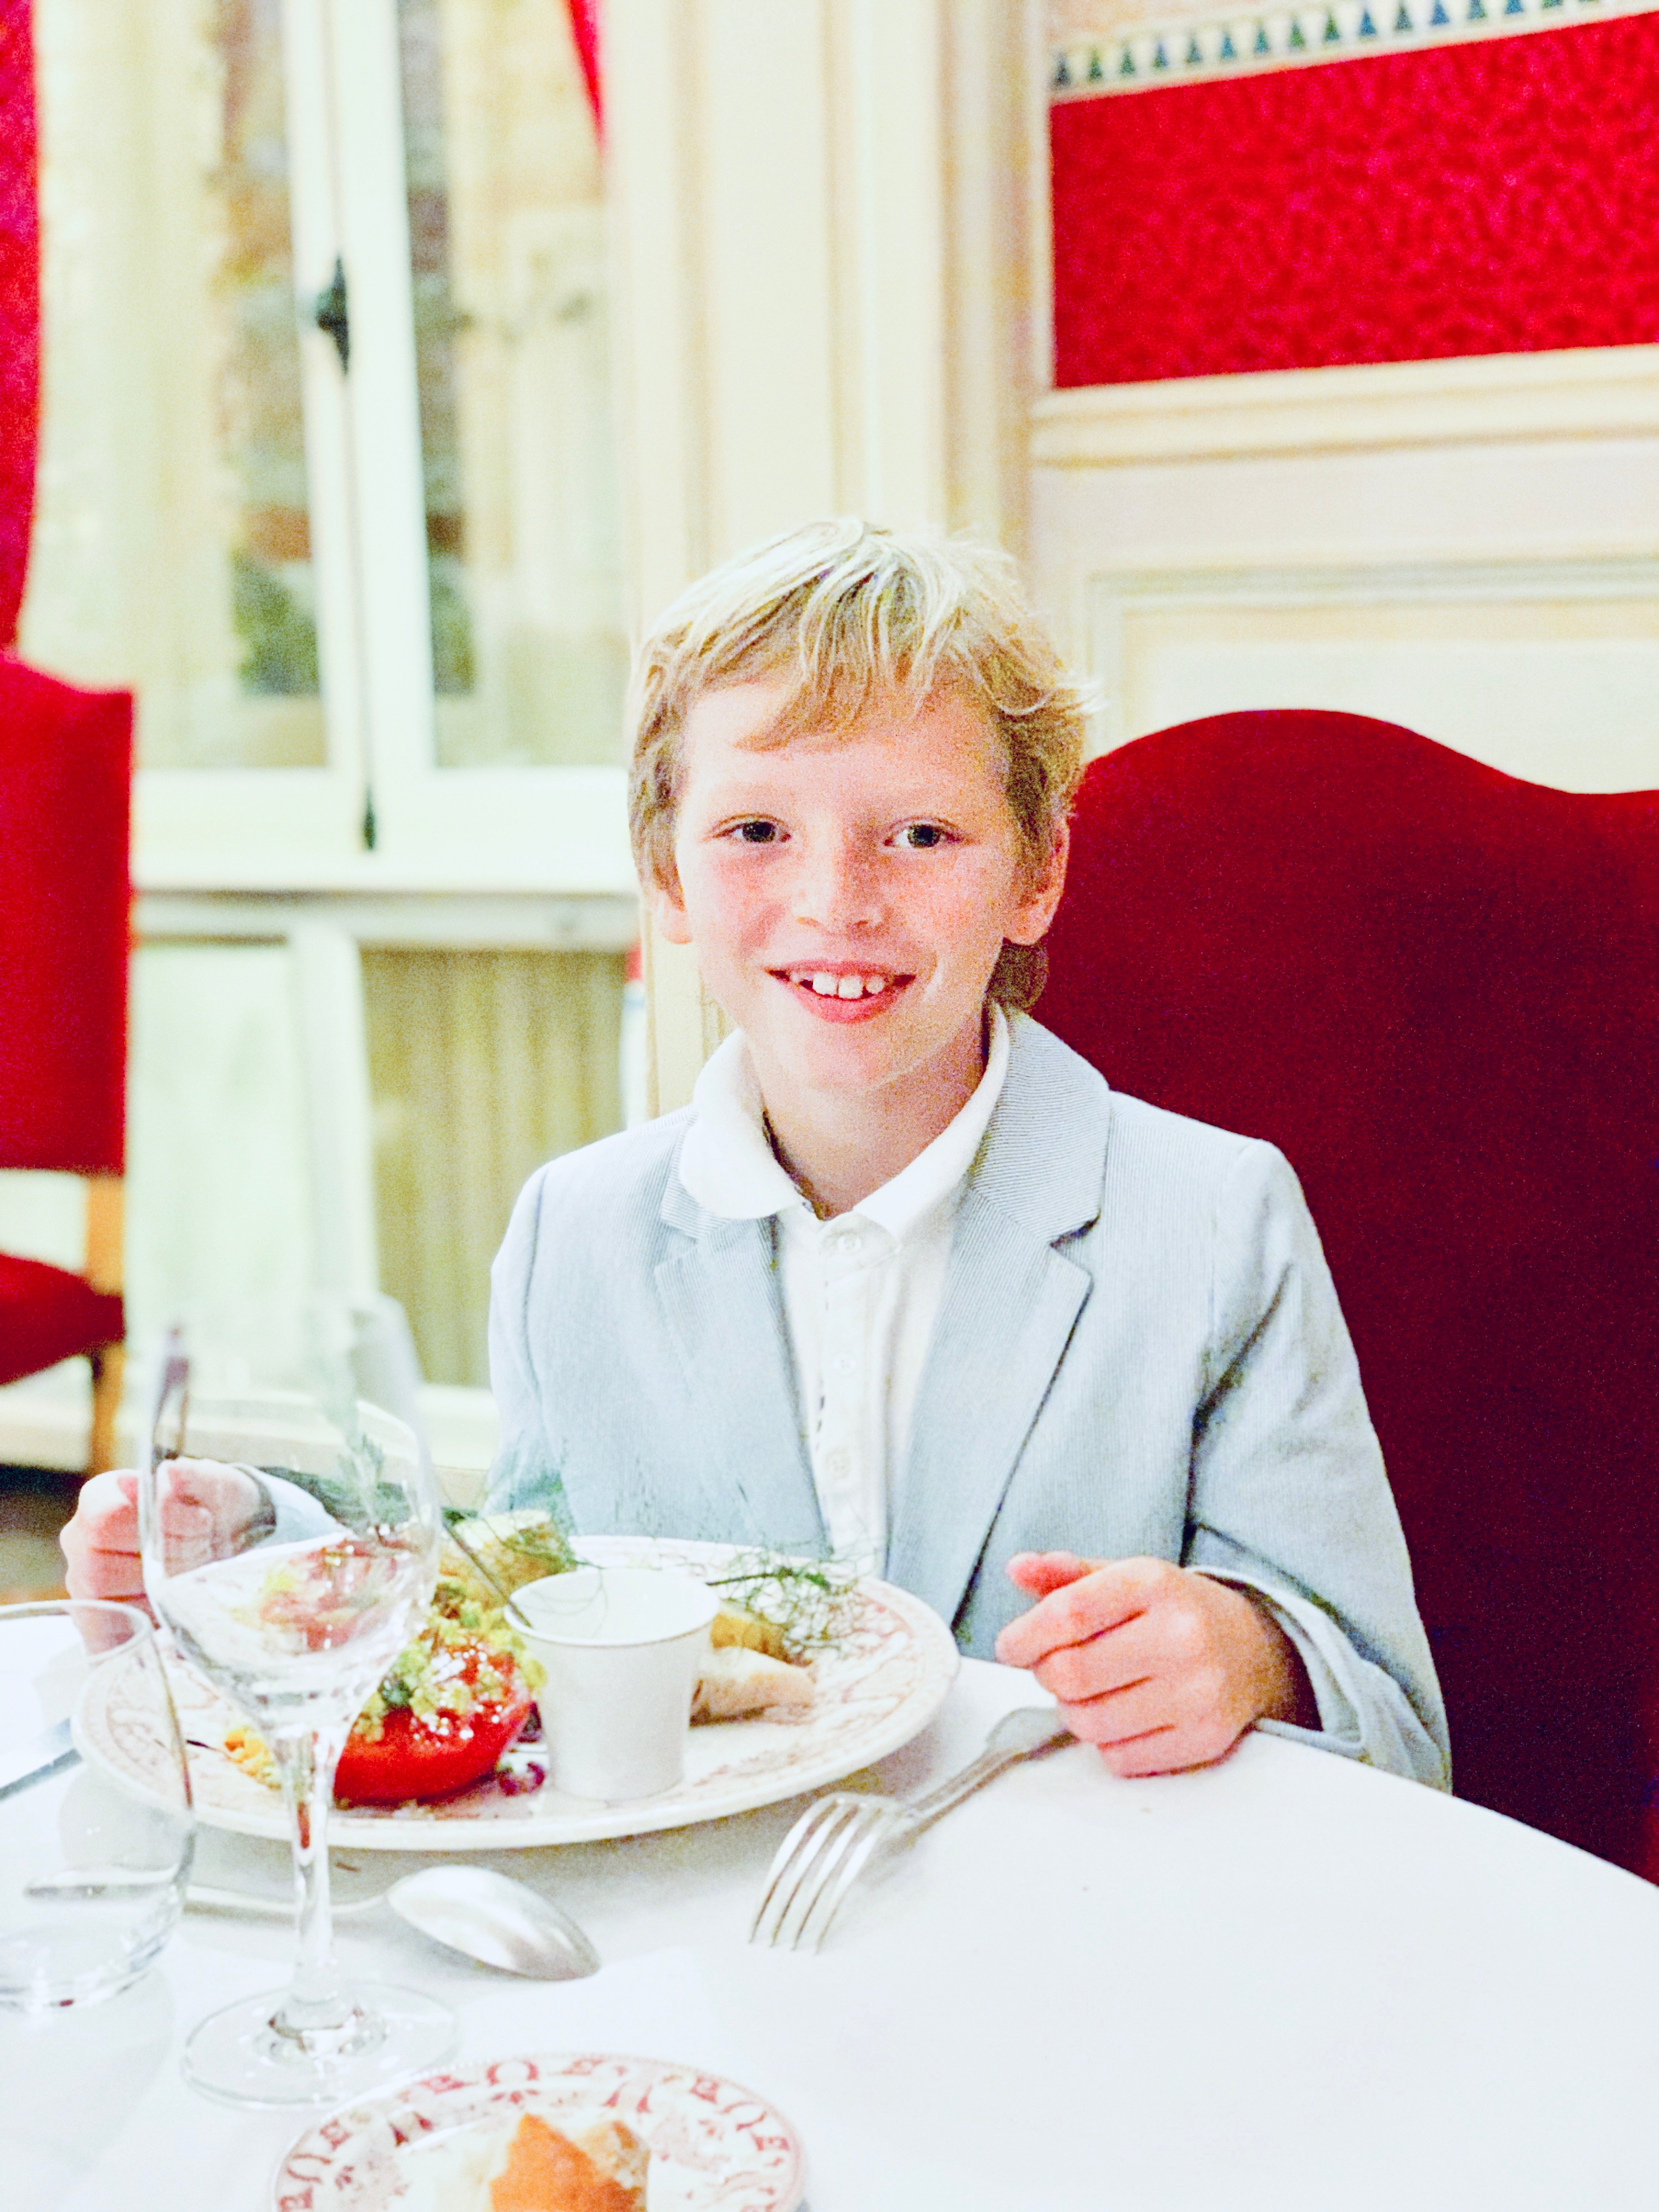 Table Manners for Children